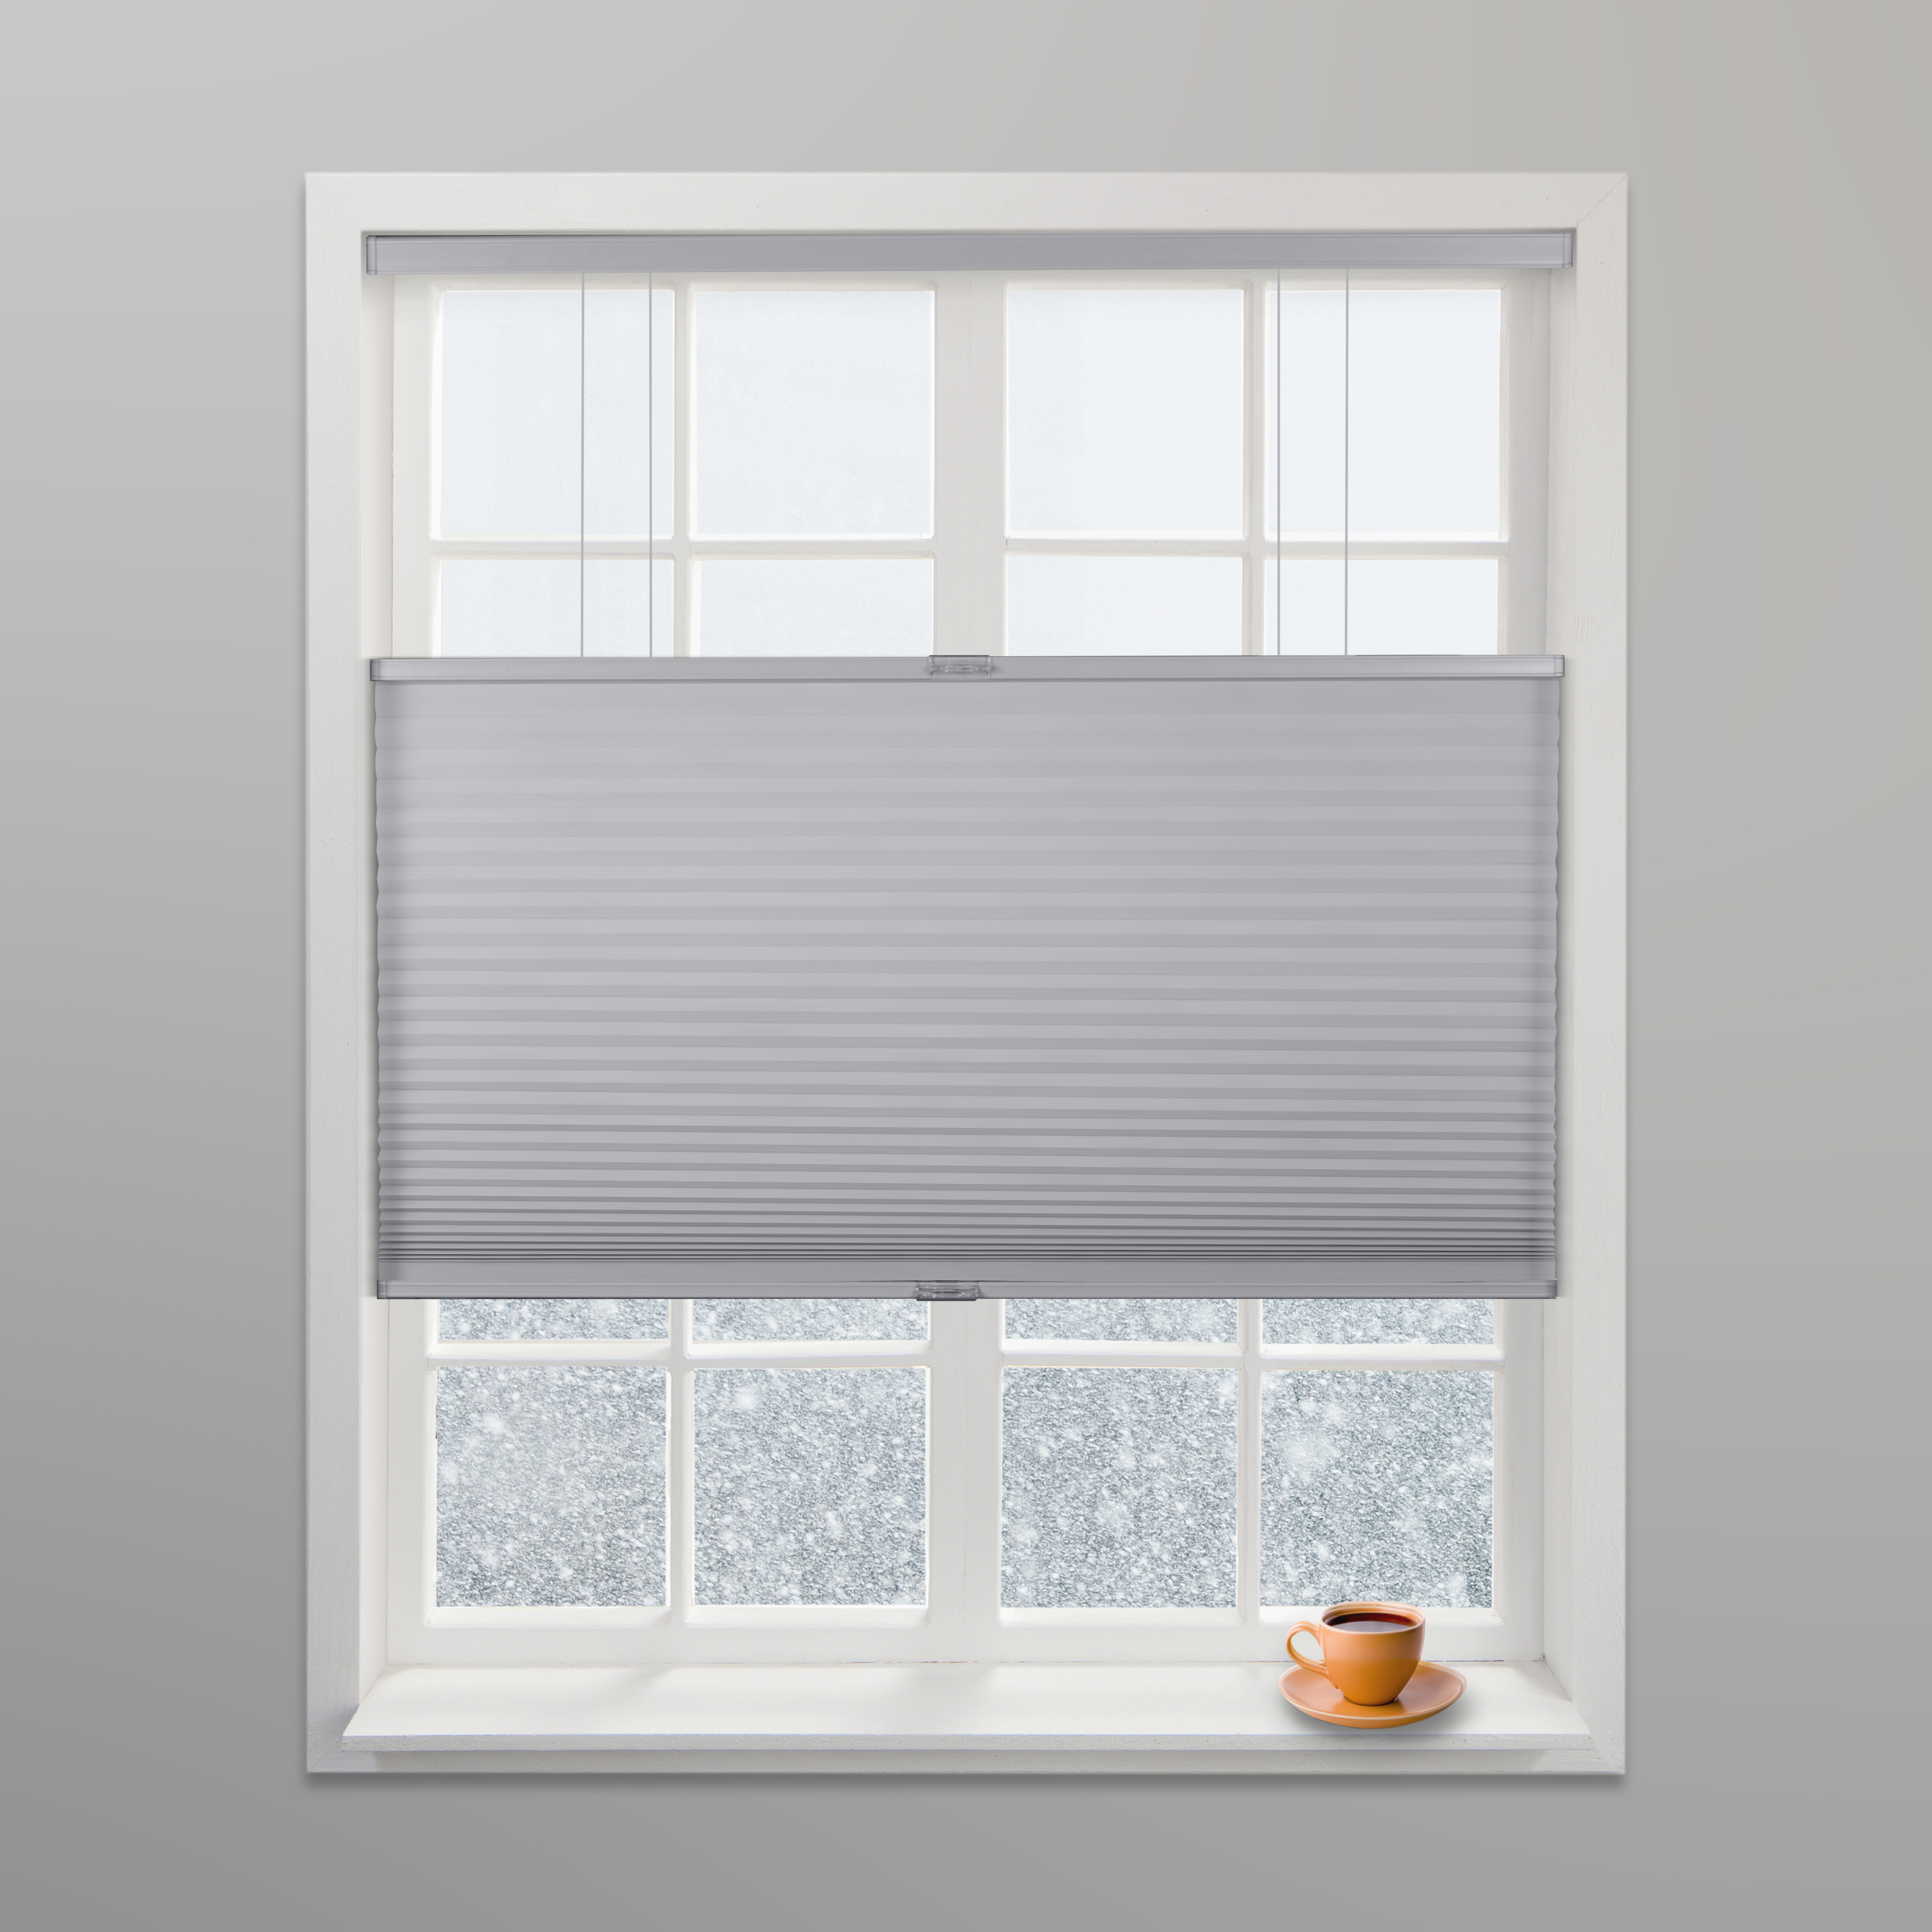 """Arlo Blinds Grey Light Filtering Top Down Bottom Up Deluxe Cordless Cellular Shades - Size: 24""""W x 60""""H, Cordless Honeycomb Blinds"""